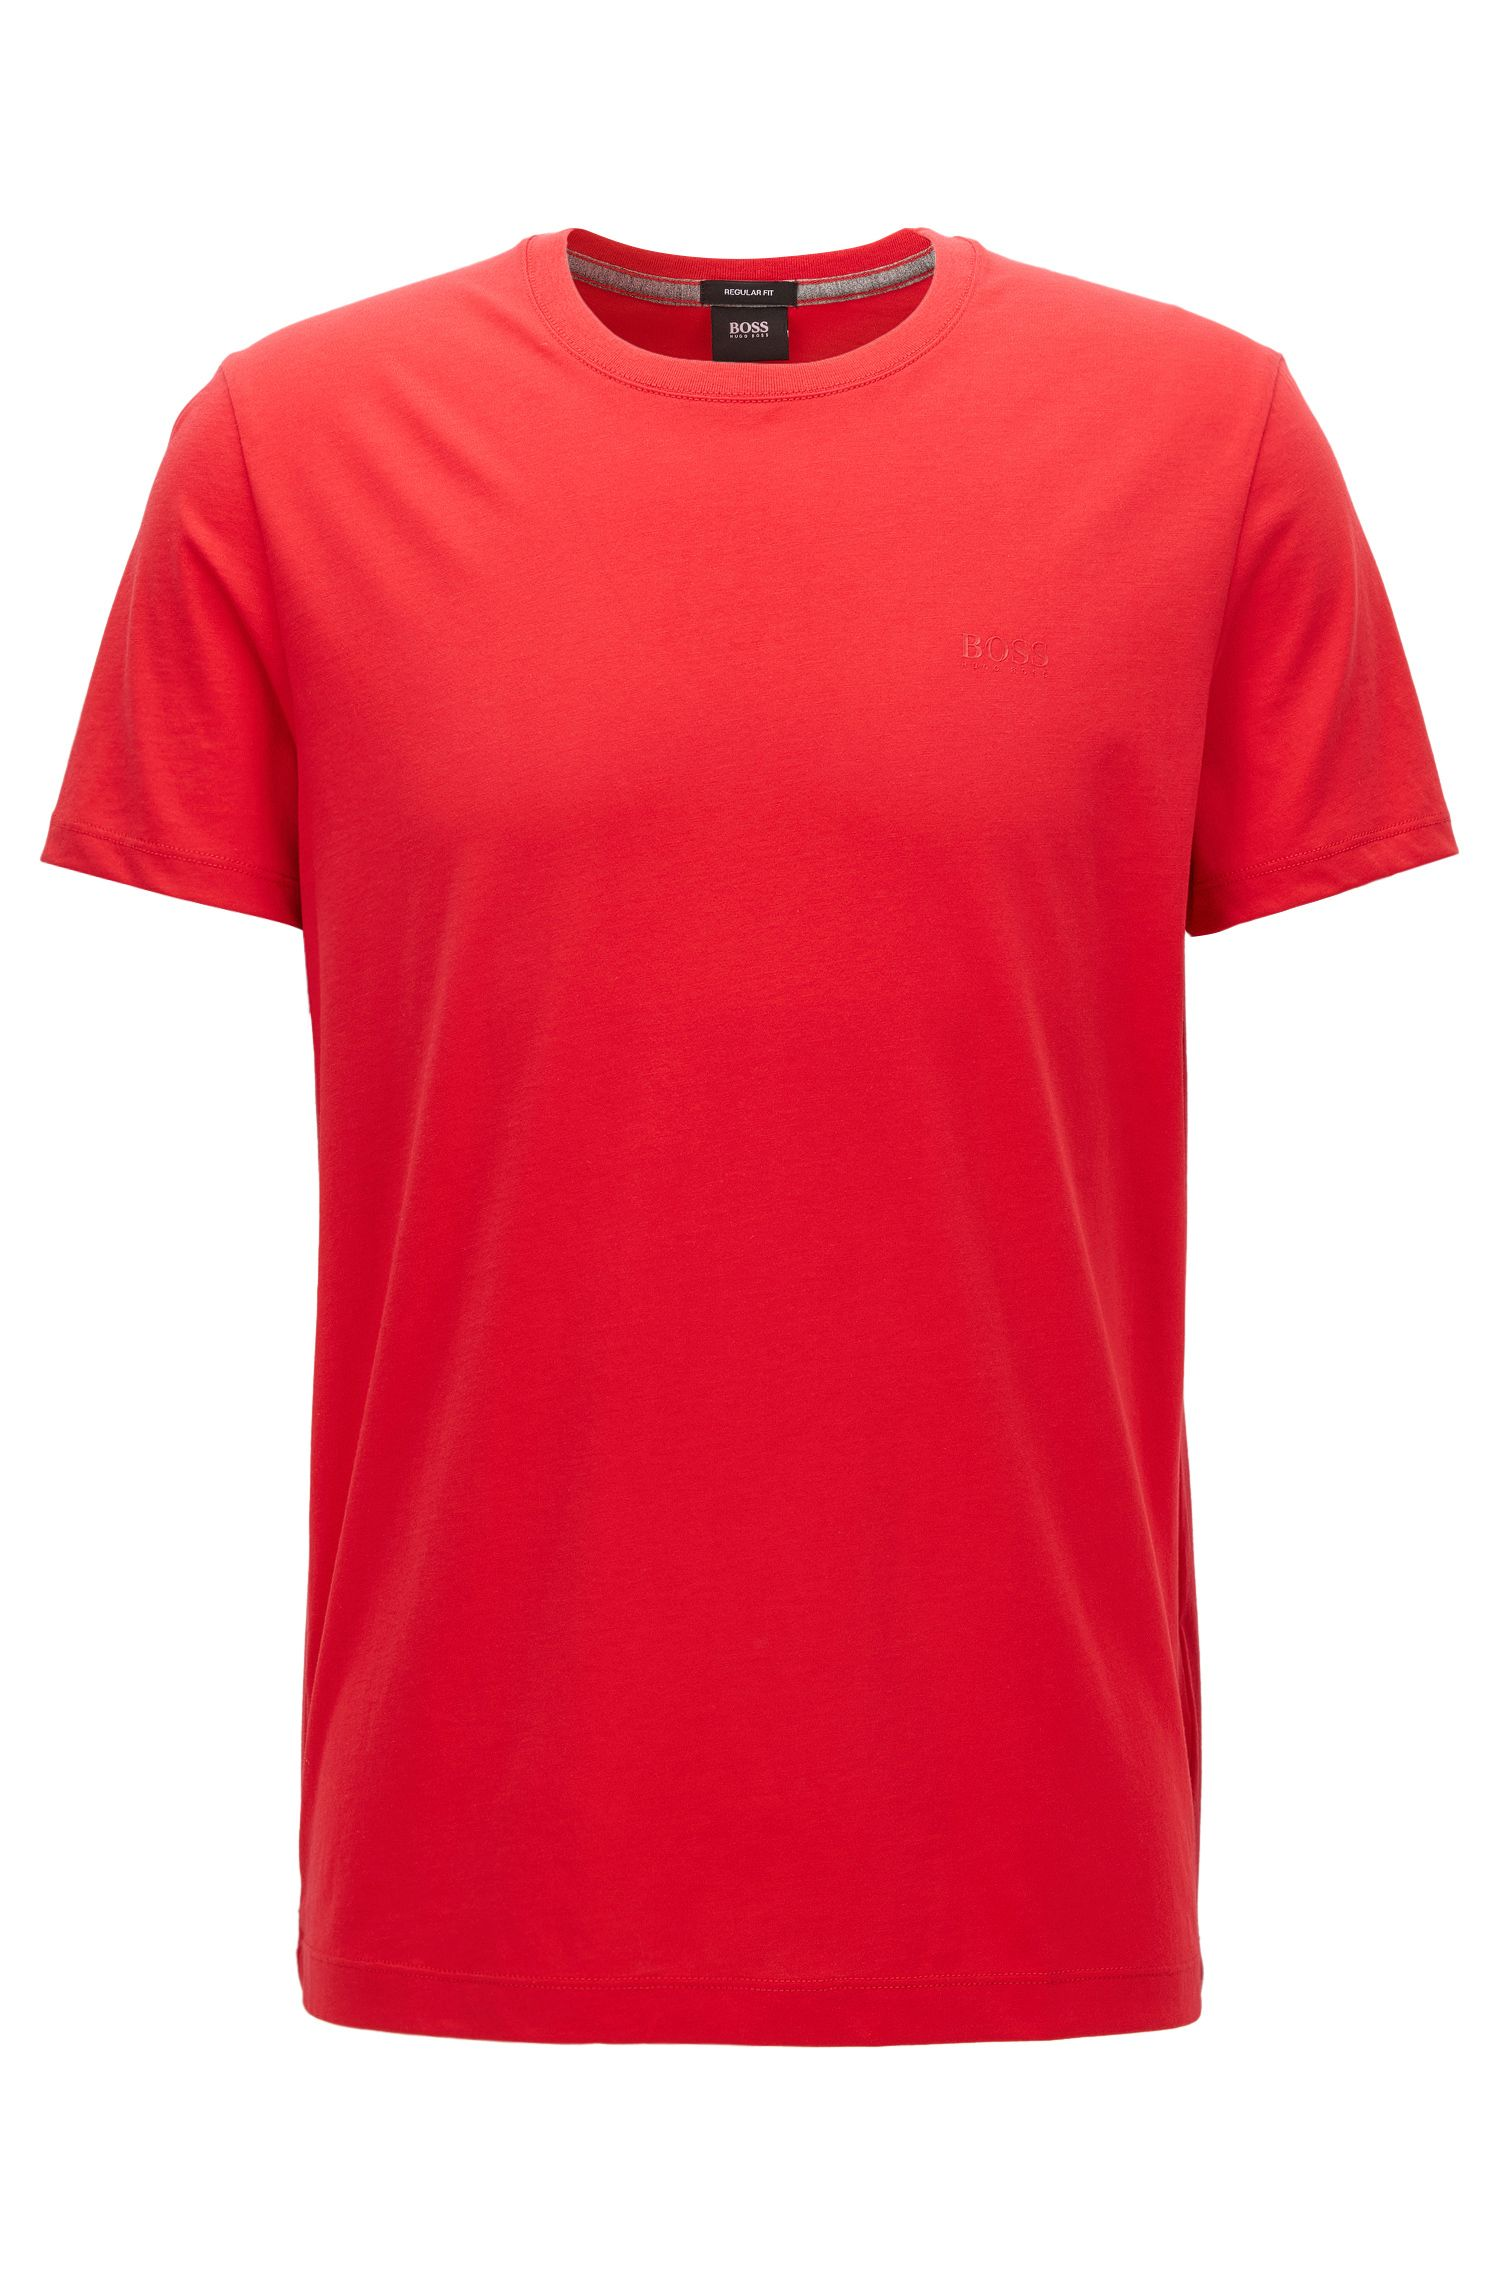 Regular-fit T-shirt in soft cotton